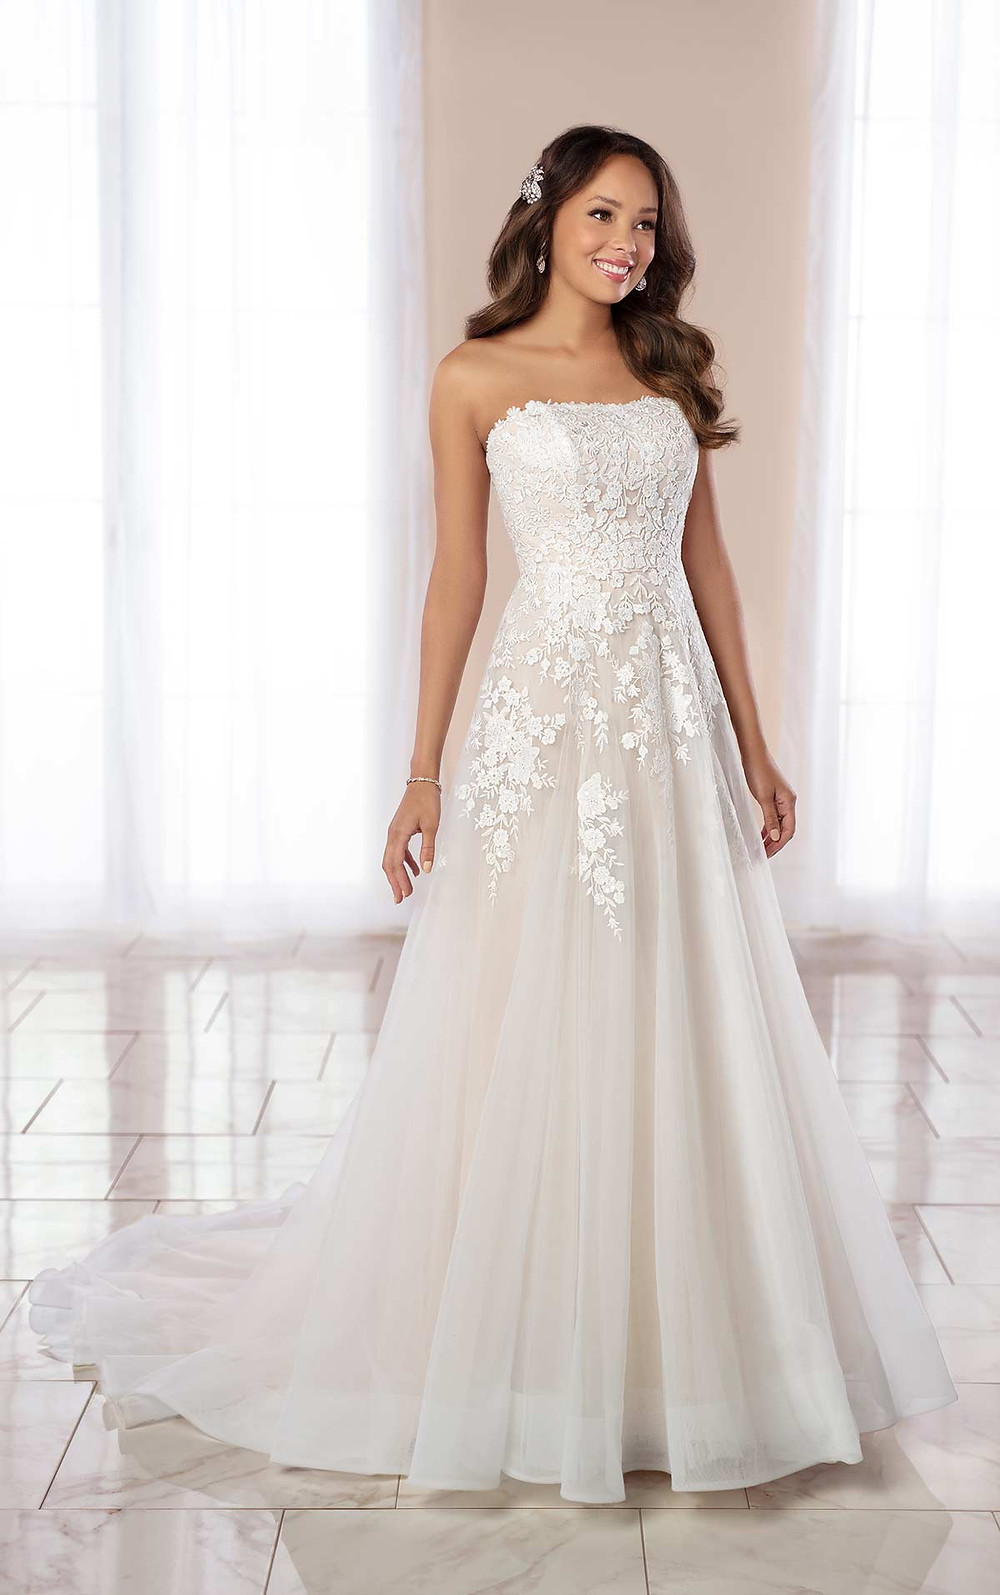 A Stella York 2020 strapless ivory lace and tulle A-line wedding dress